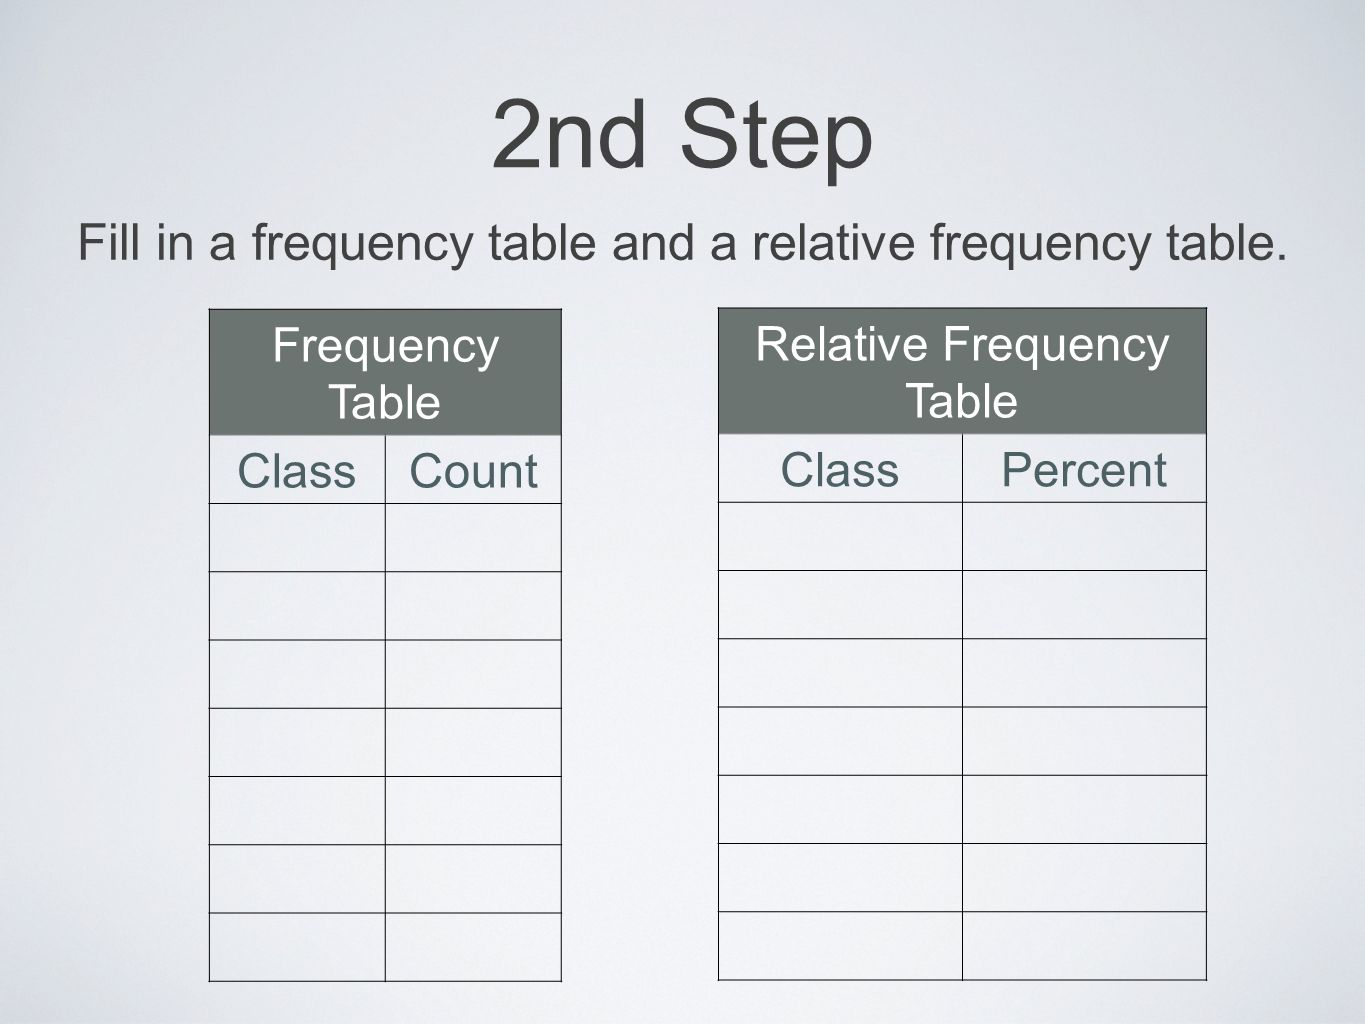 2nd Step Fill in a frequency table and a relative frequency table.